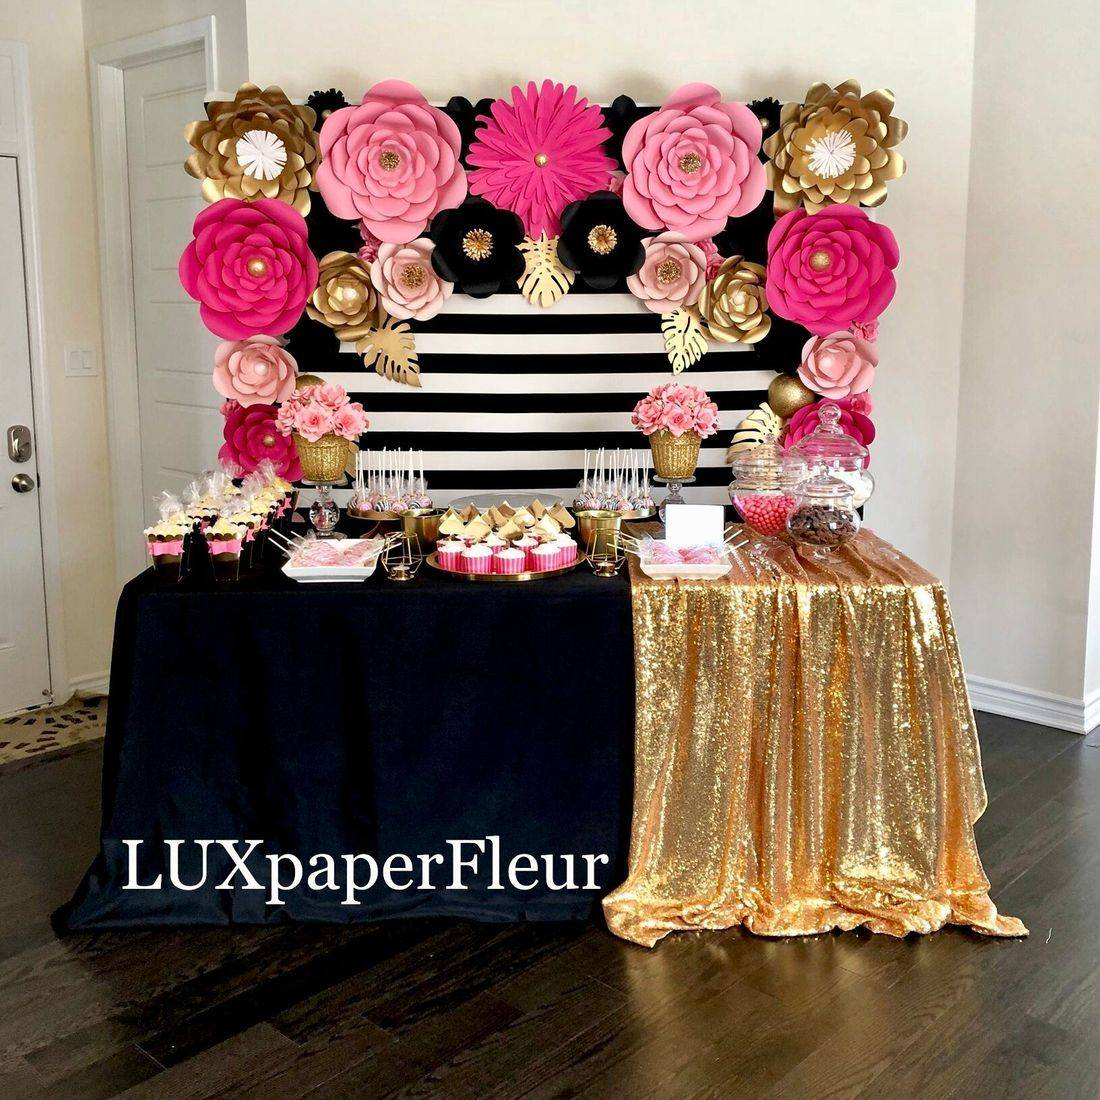 Kate Spade Inspired Paper Flower Backdrop and Sweet Table